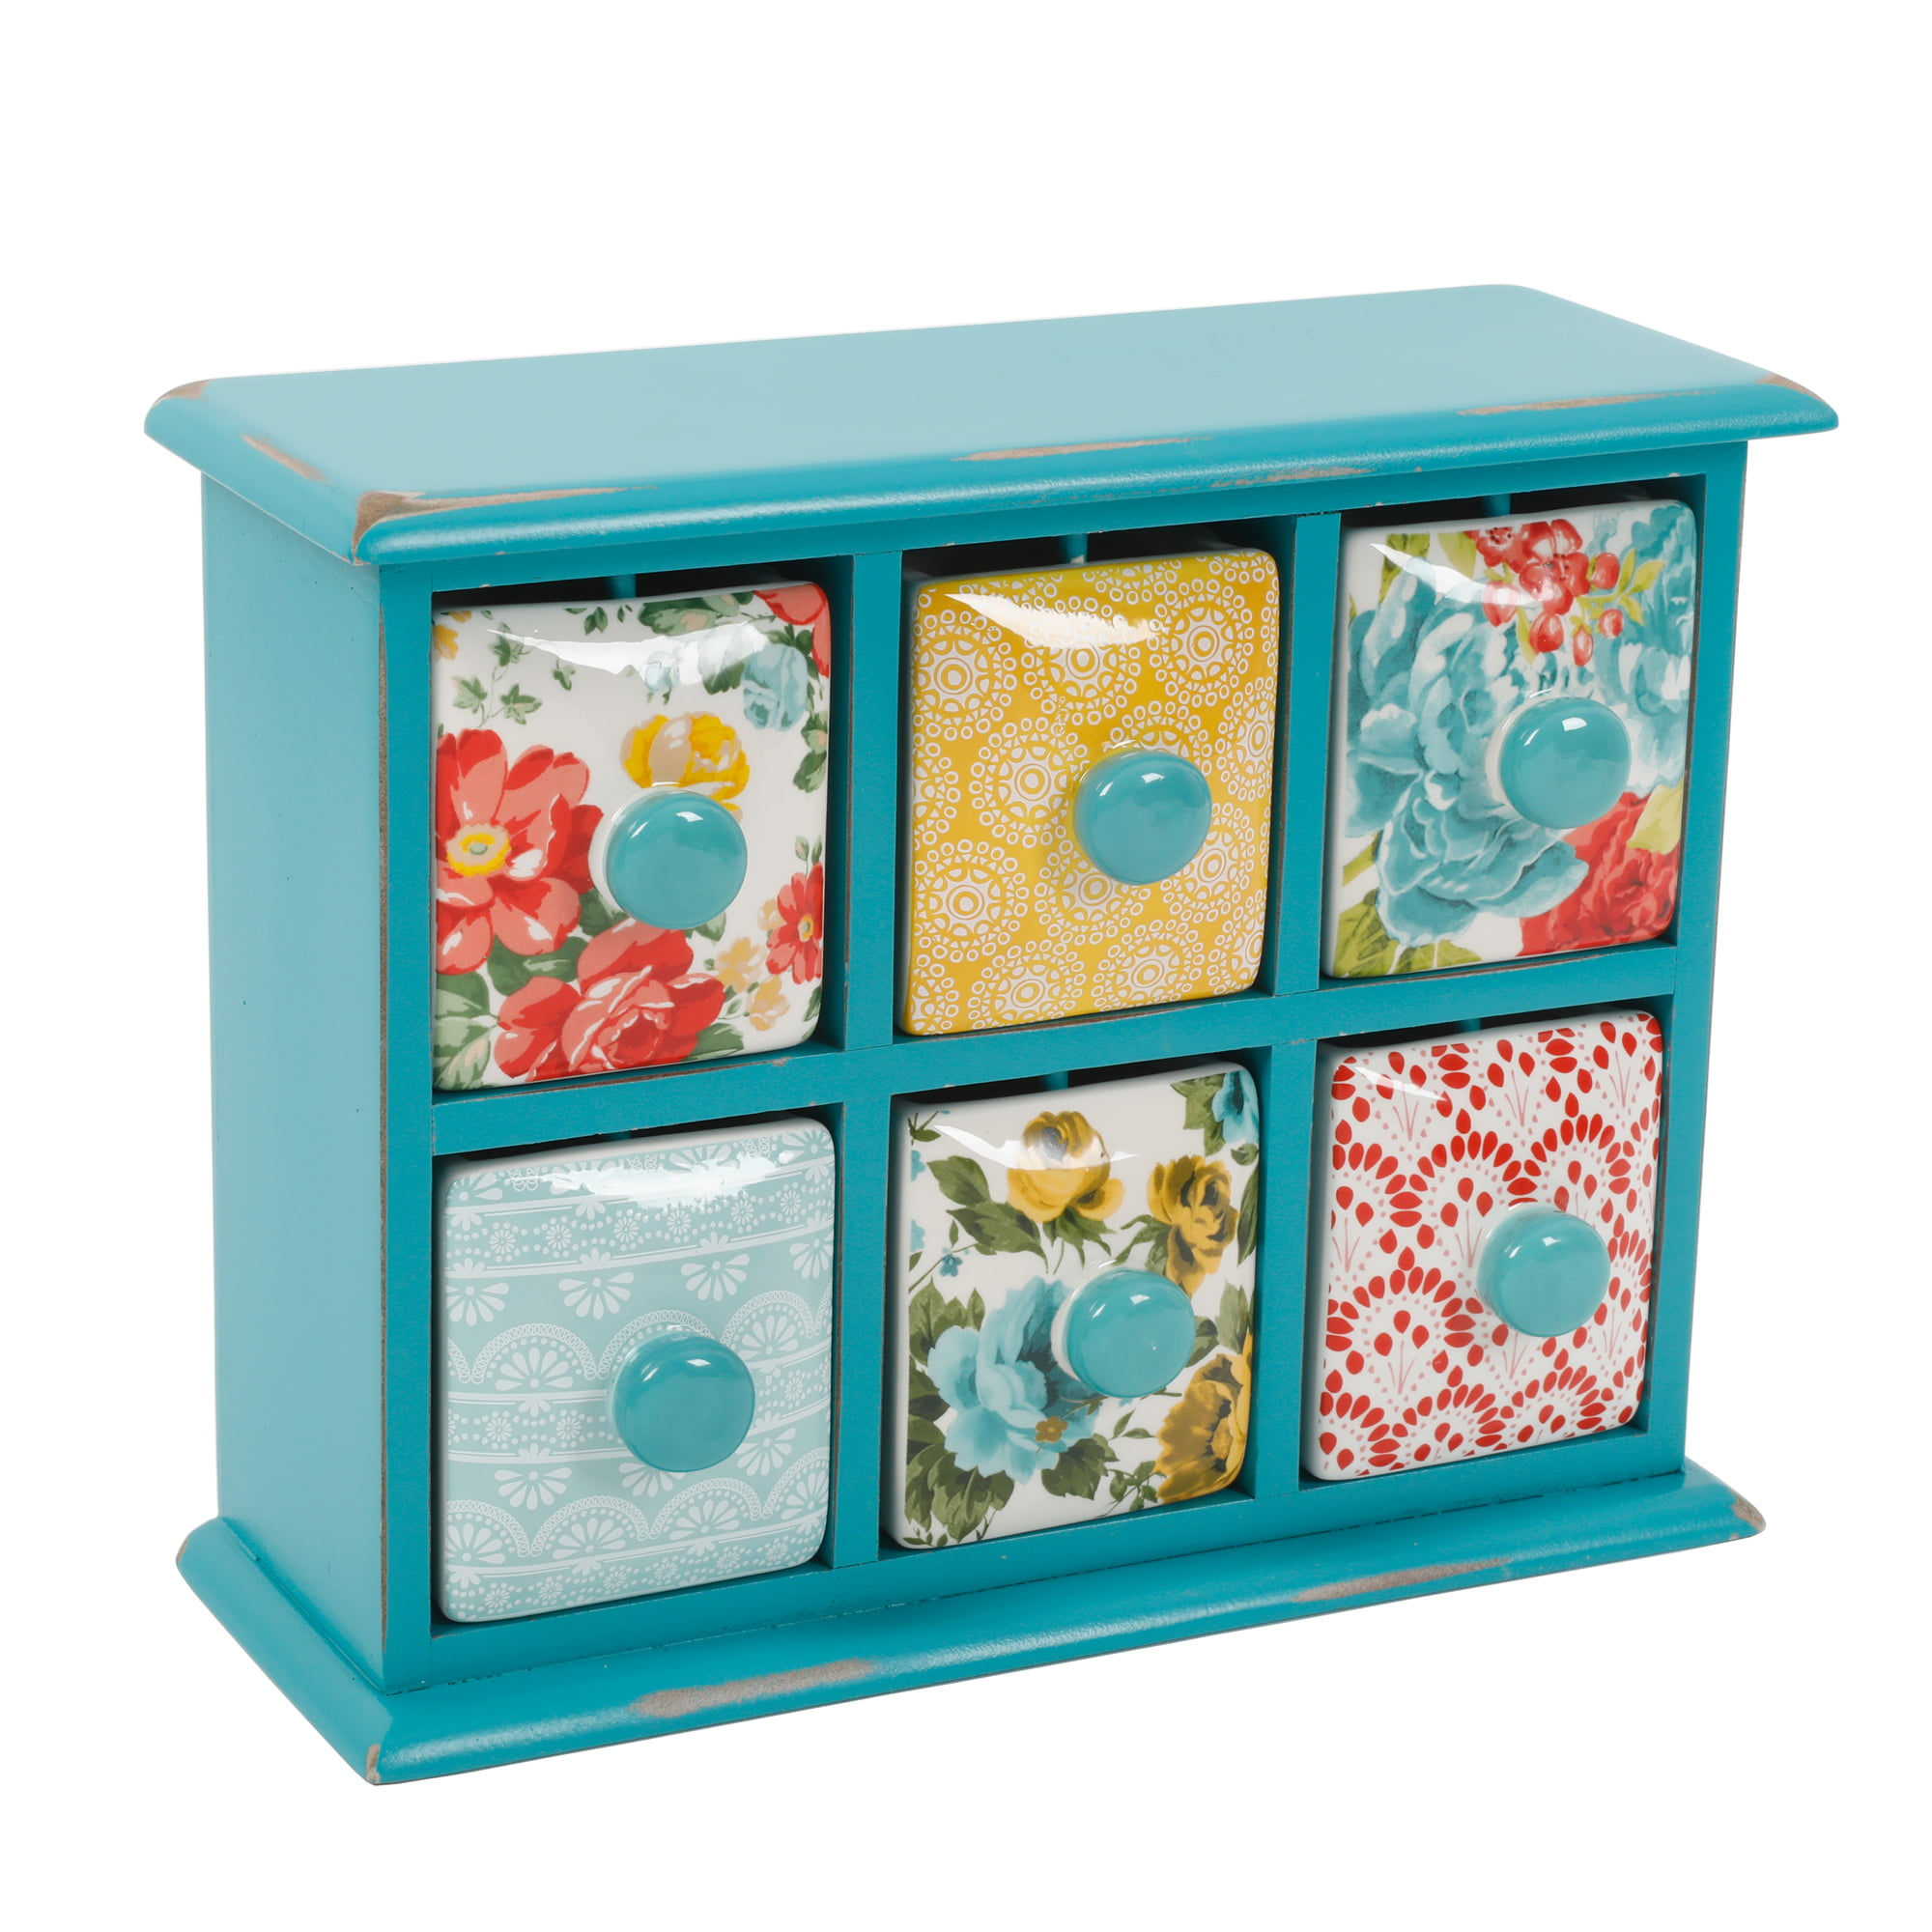 The Pioneer Woman Vintage Floral 6-Drawer Spice /Tea Box - Walmart.com